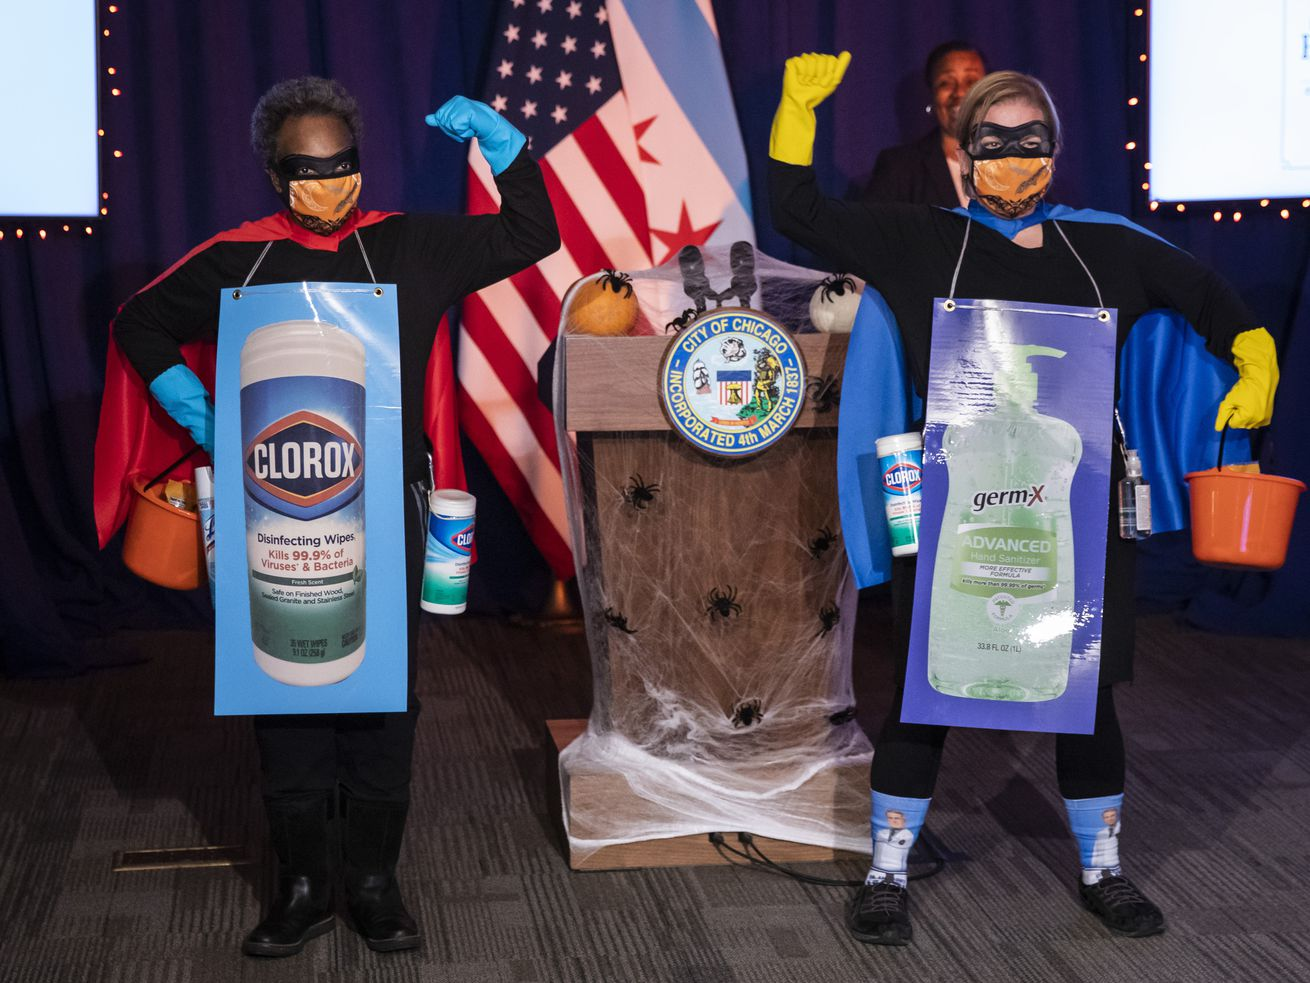 """Mayor Lori Lightfoot and Dr. Allison Arwady, commissioner of the Chicago Department of Public Health, wear """"Rona Destroyer"""" costumes and pose for a photo at City Hall"""